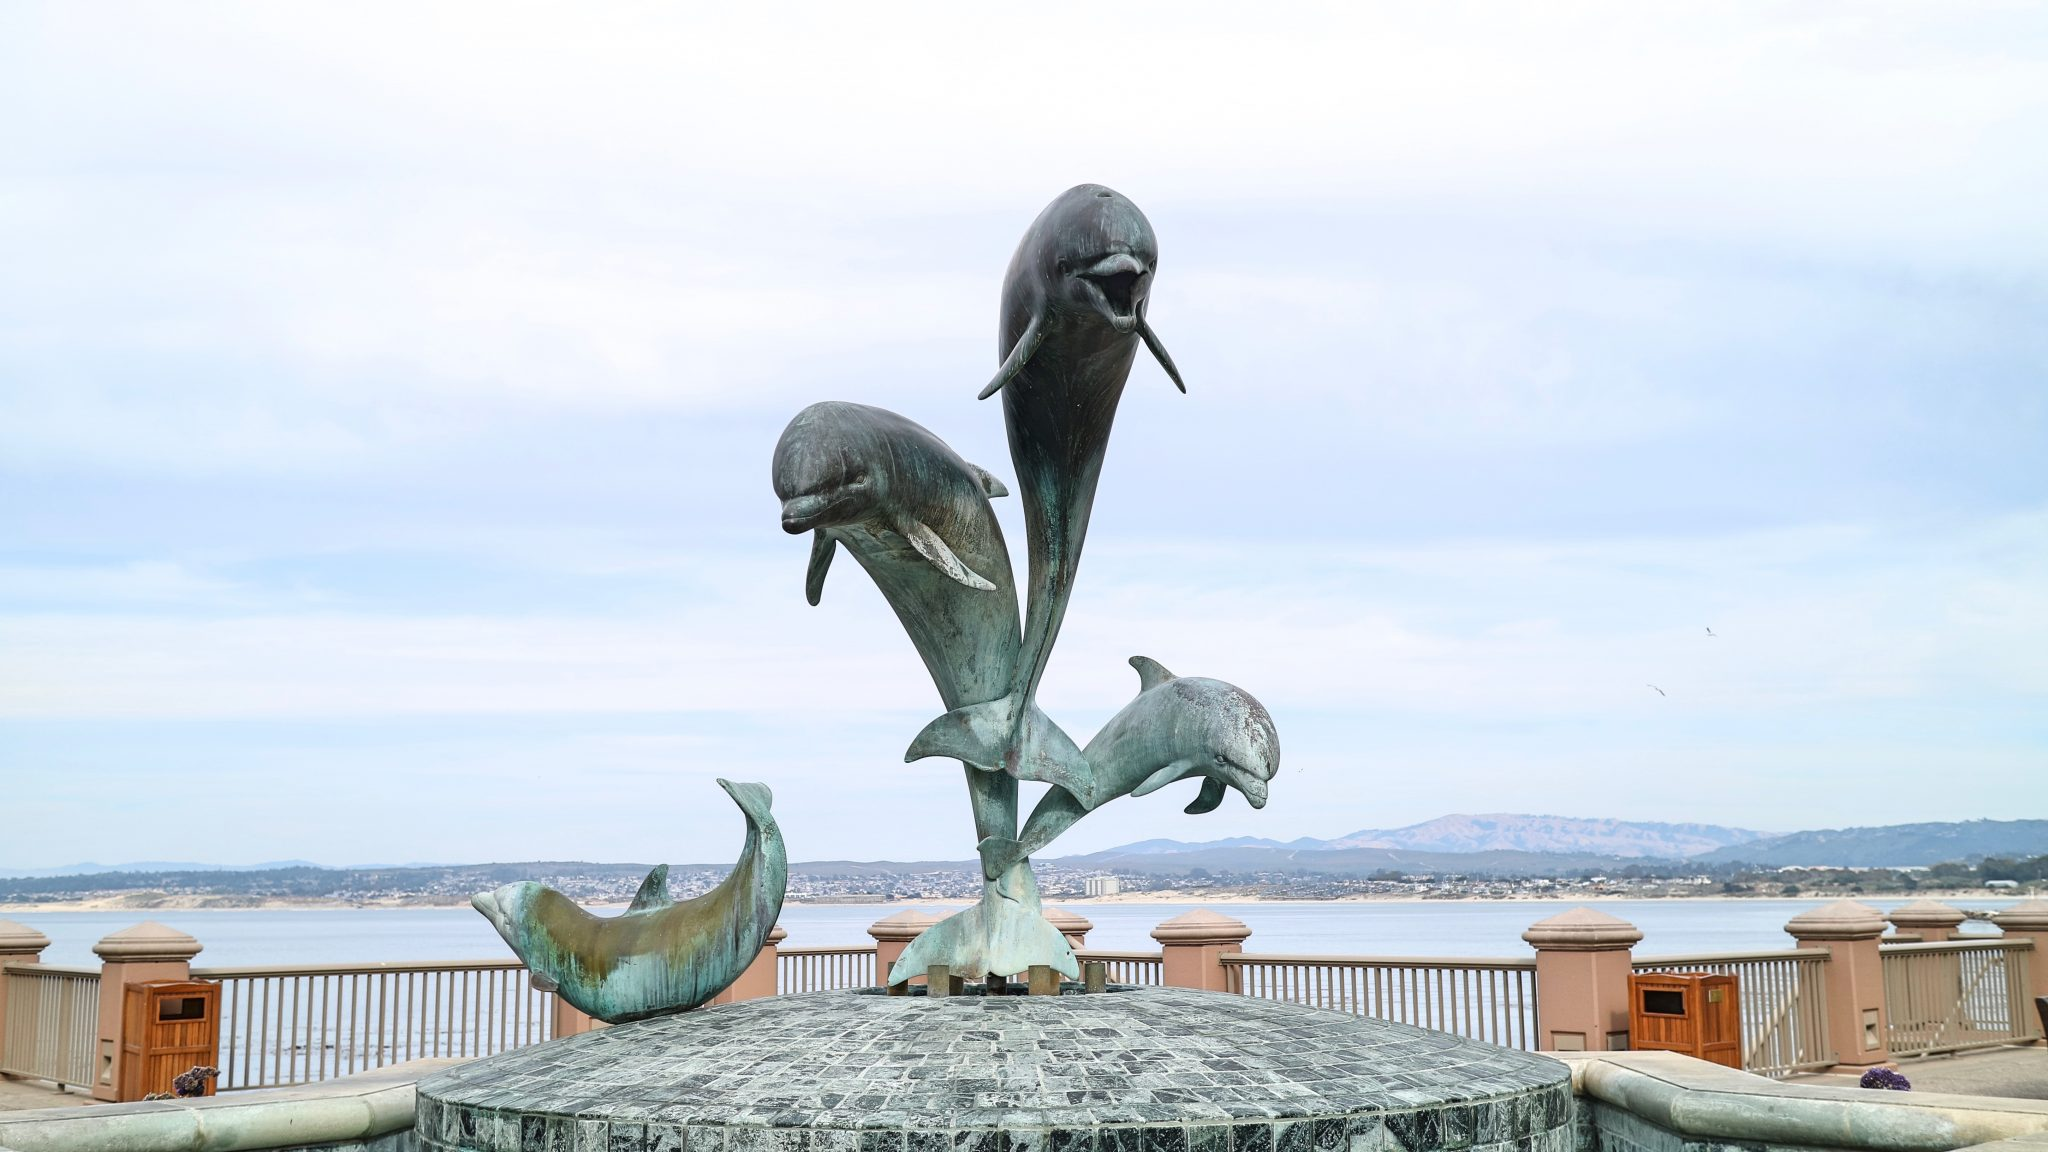 Dolphin Statue in Monterey, California